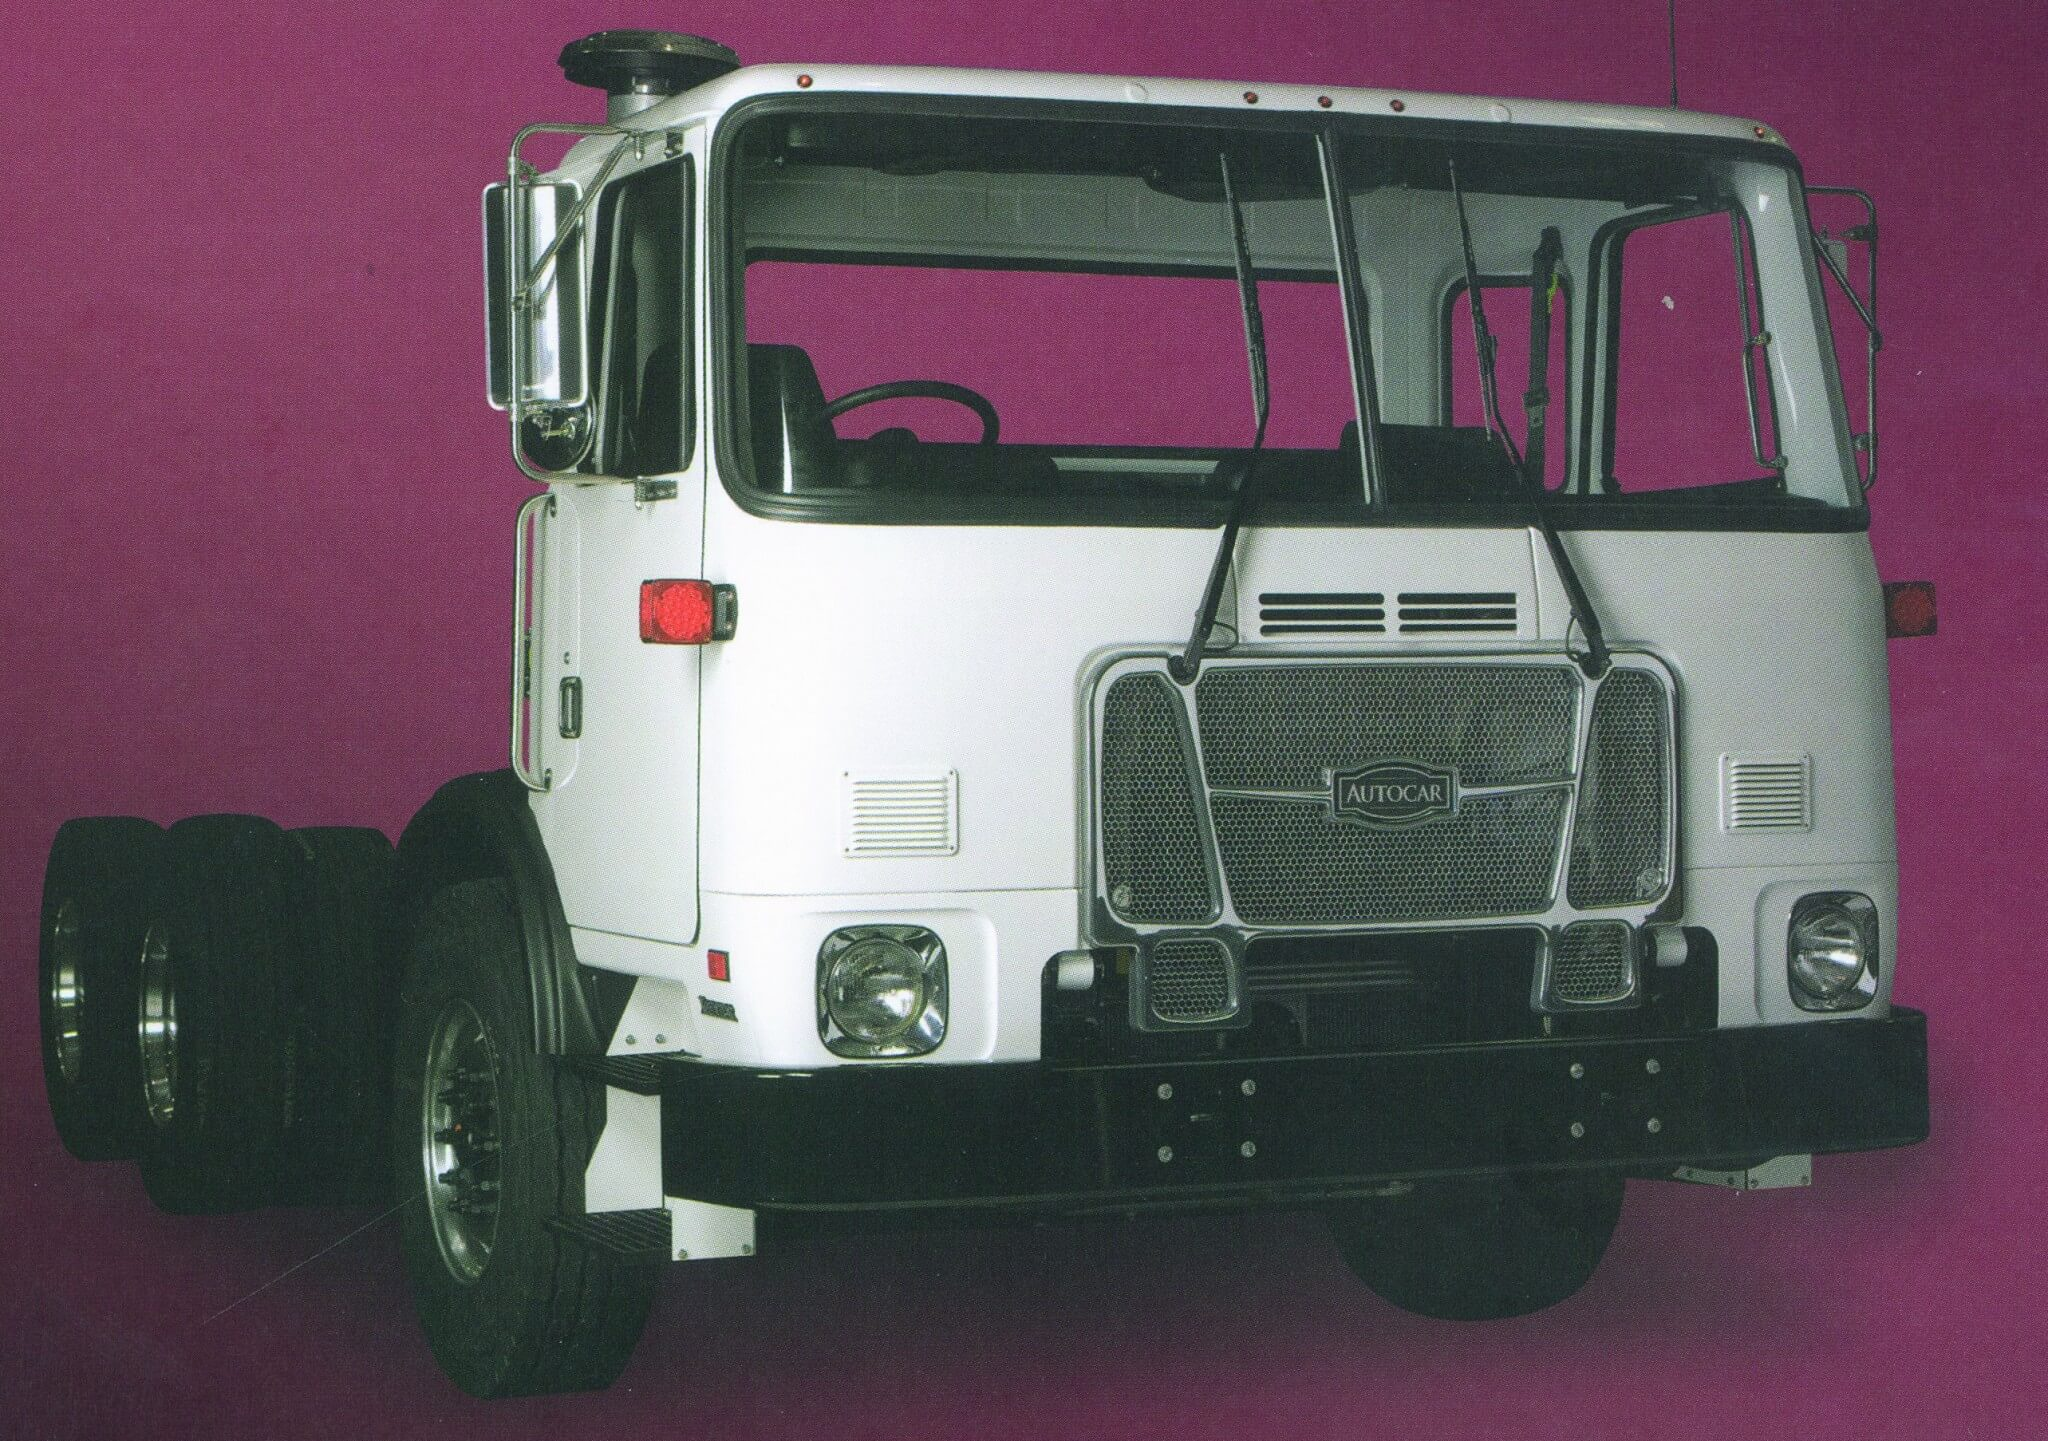 In 2001, Volvo sold the Autocar brand and the Xpeditor ACX chassis to Grand Vehicle Works Holdings LLC.